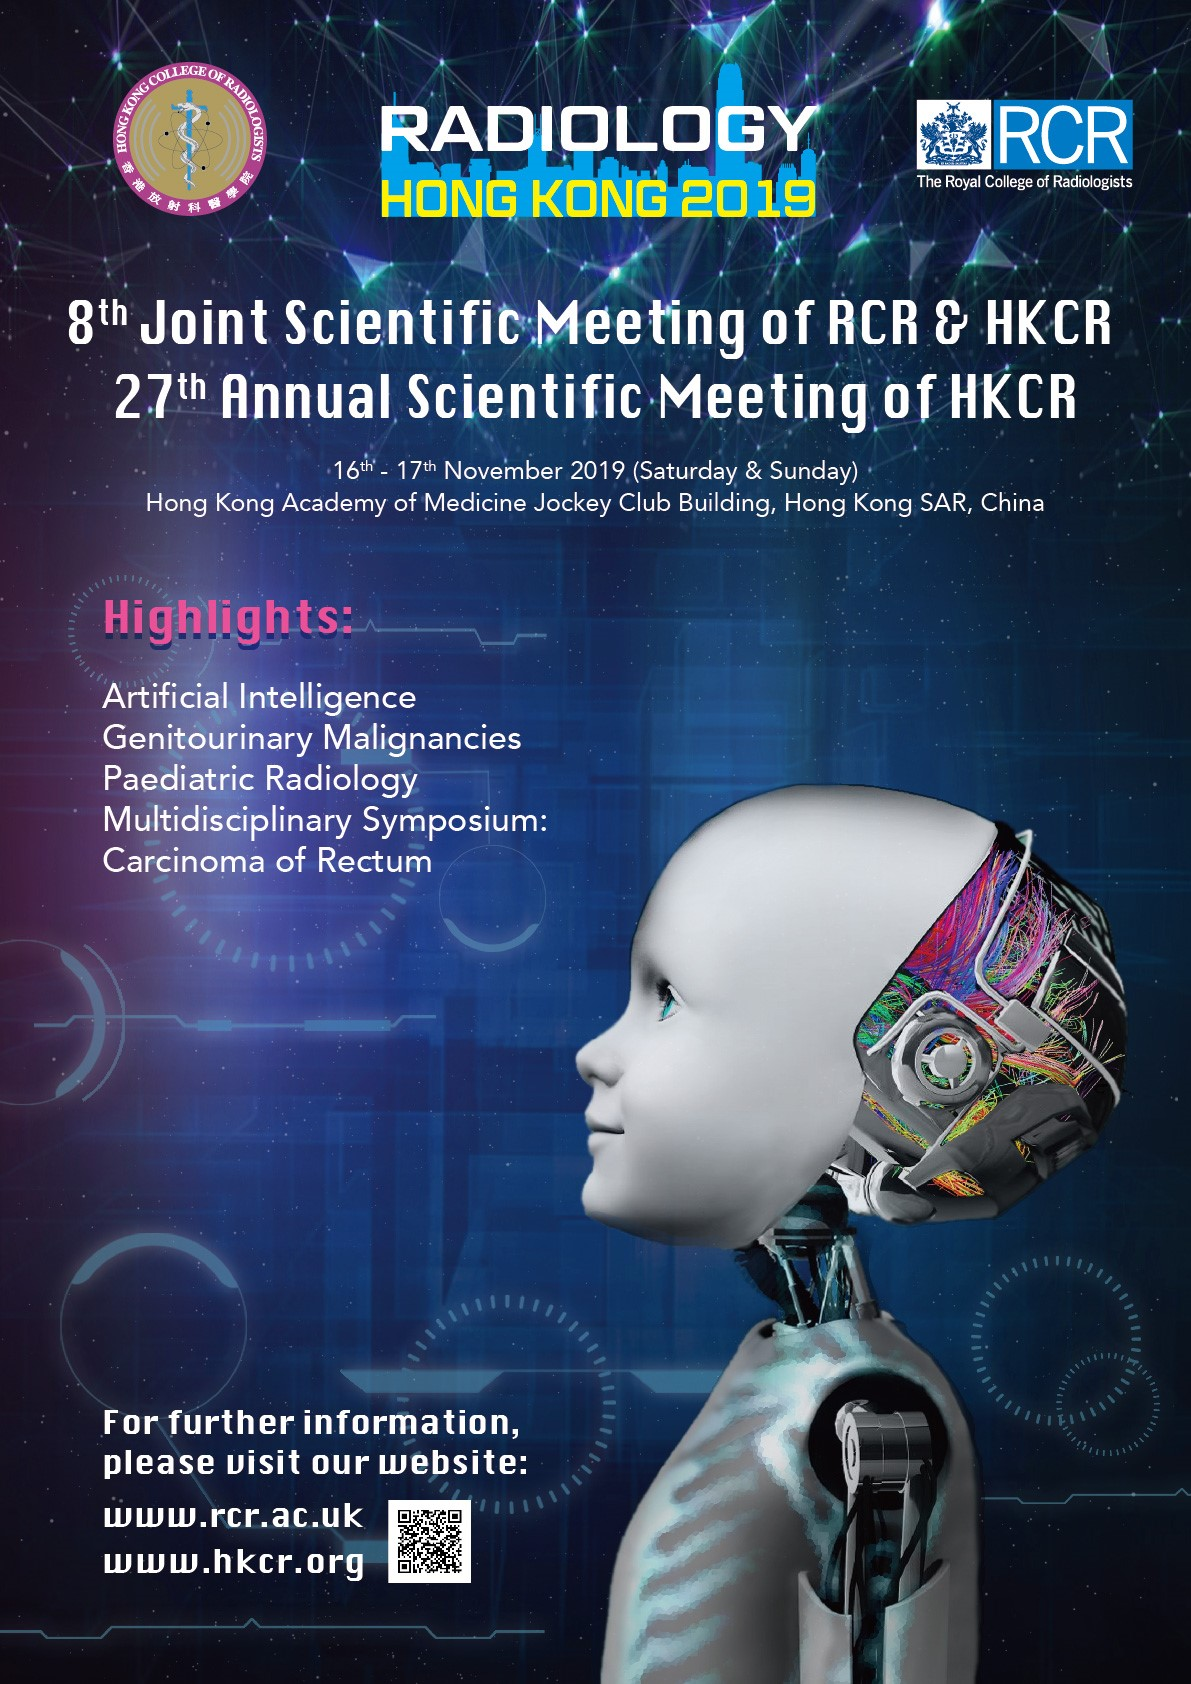 8th Joint Scientific Meeting of RCR & HKCR and 27th Annual Scientific Meeting of HKCR, 16 - 17 November 2019